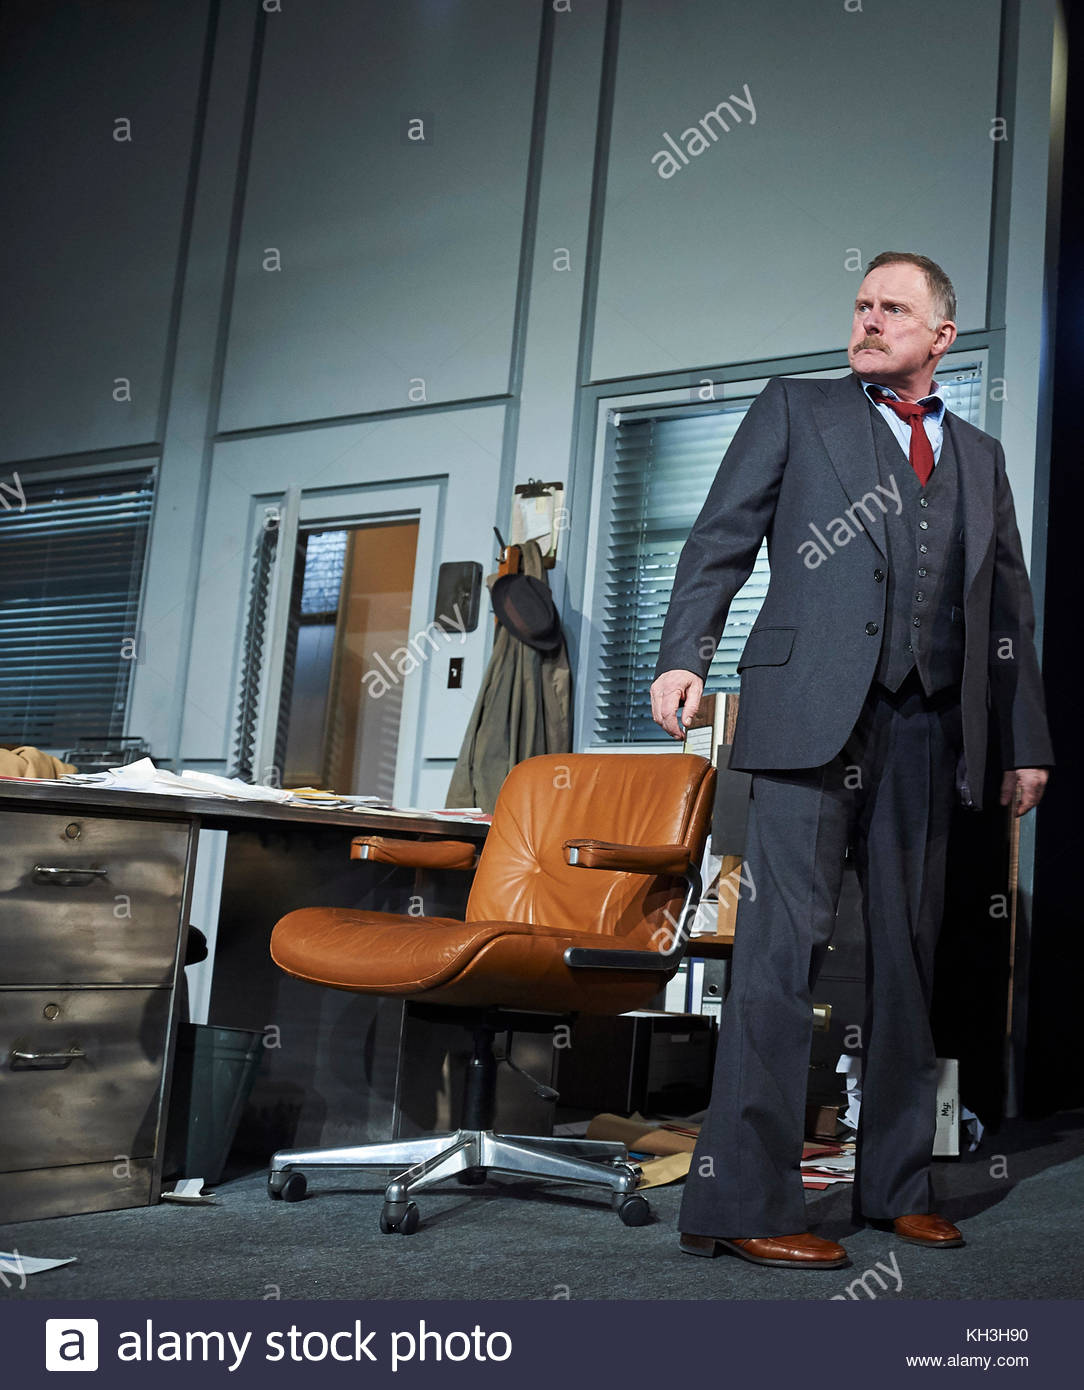 Glengarry Glen Ross by David Mamet, directed by Sam Yates. With Robert Glenister as Dave Moss. Opens at The Playhouse - Stock Image